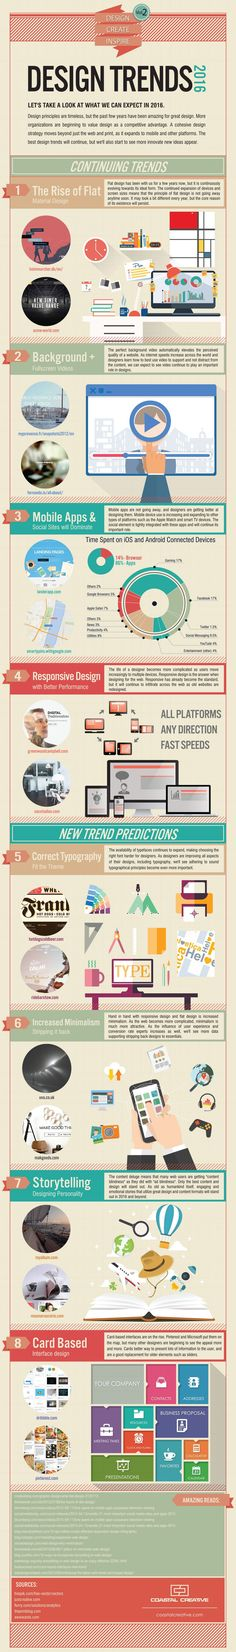 Web design trends for 2016 (Infographic). I like everything except Card Design (at least the way it is typically done). #webdesign #infographic #5minutebreak